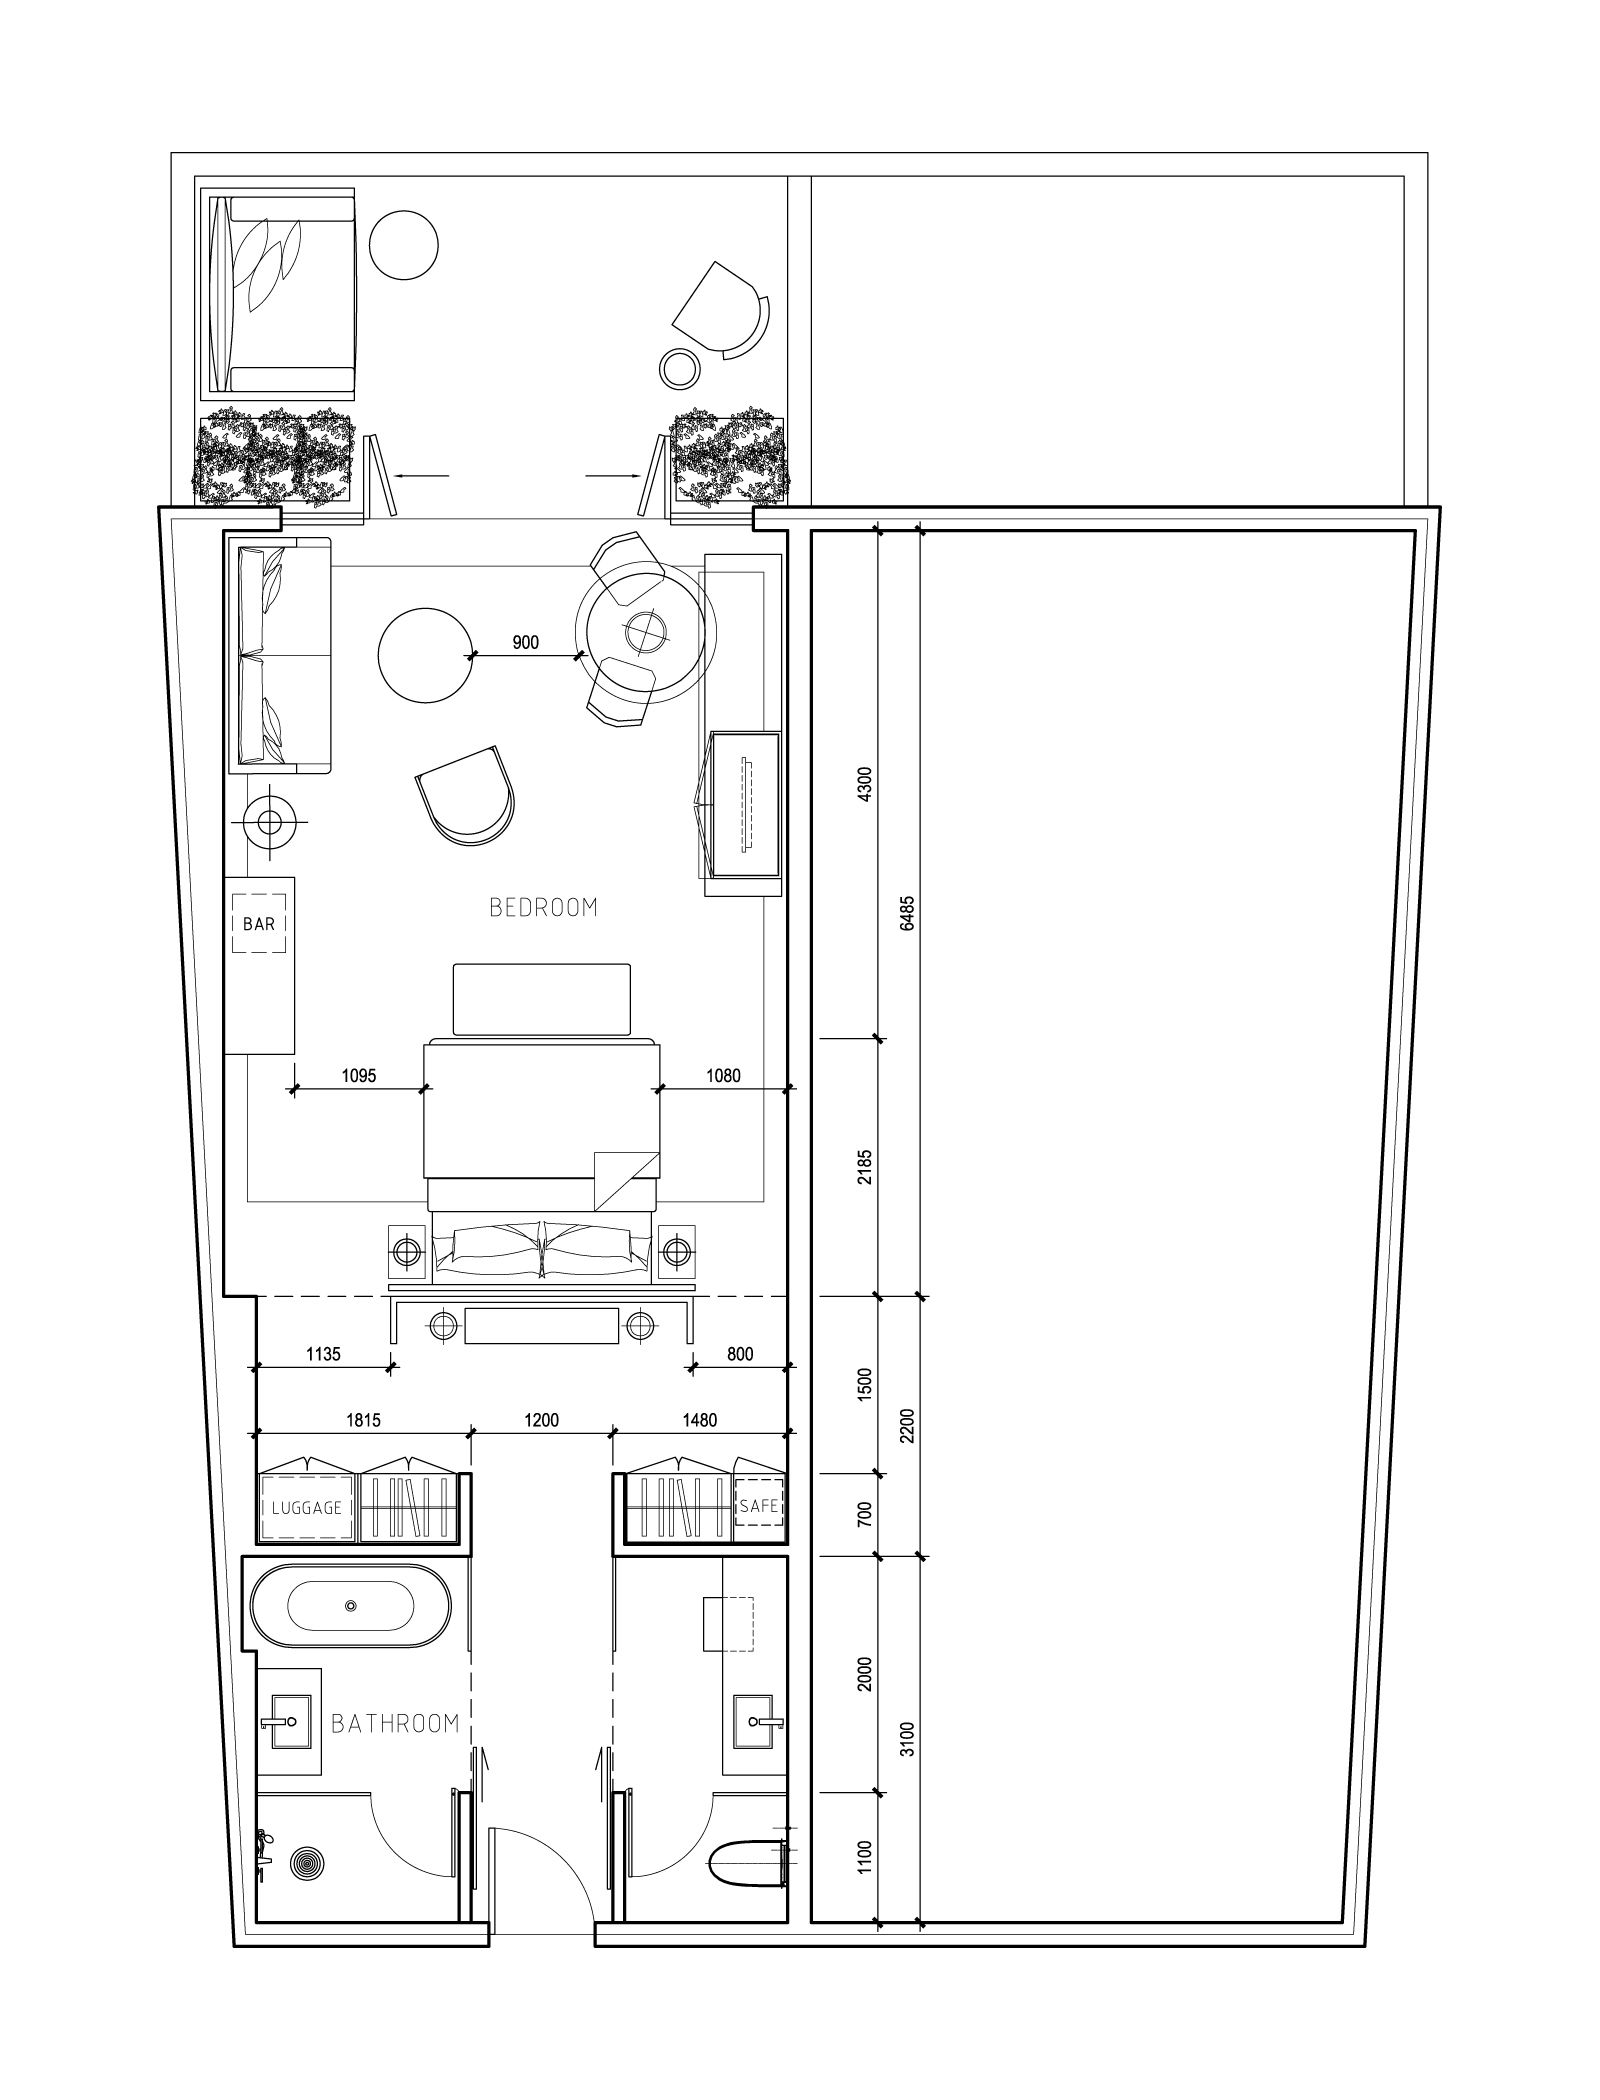 Hotel Room Plan: This Is Actually A Plan For A Hotel Room, But It Has Some